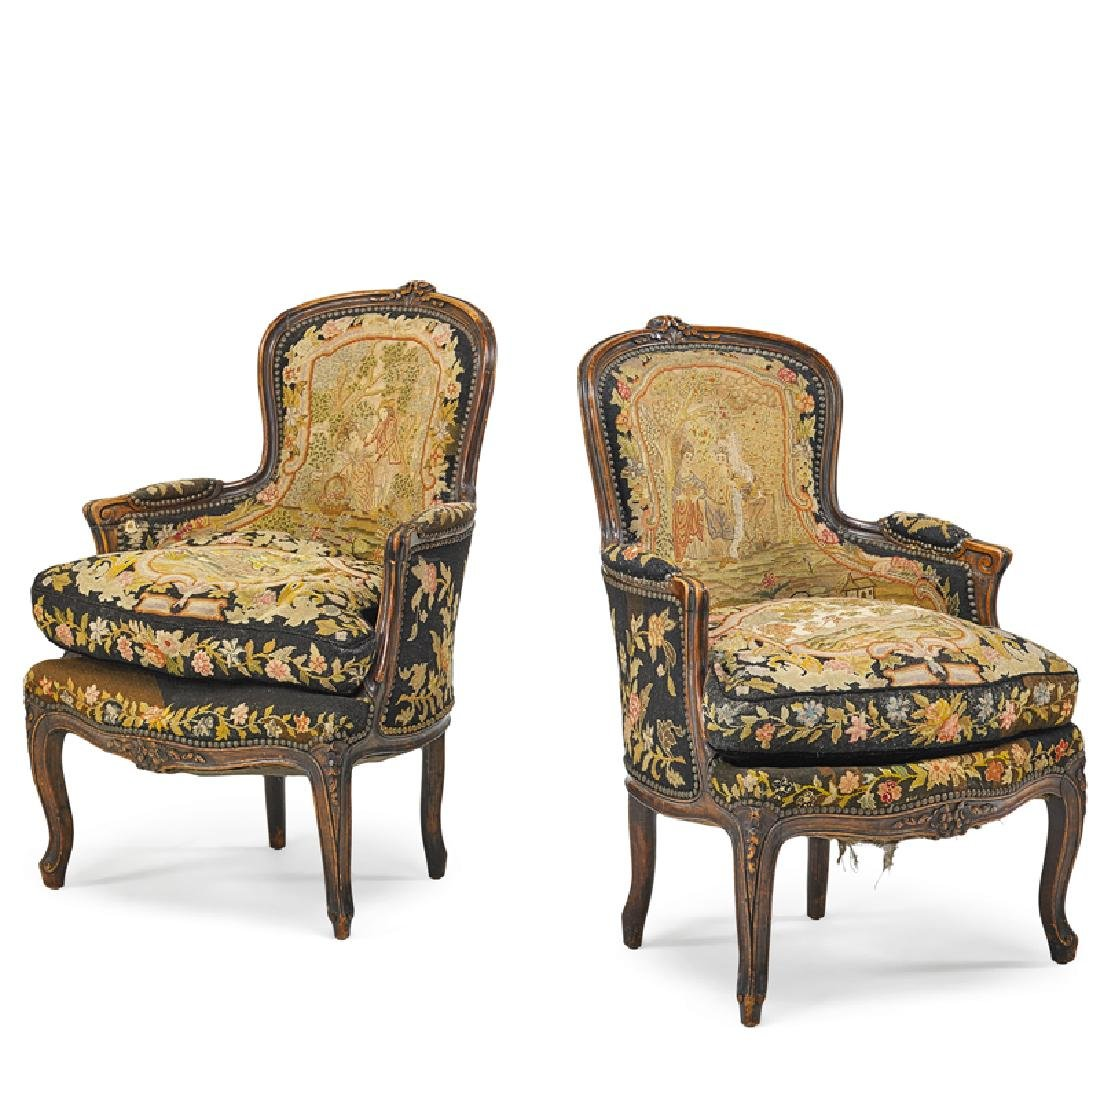 PAIR OF LOUIS XV STYLE WALNUT BERGERES